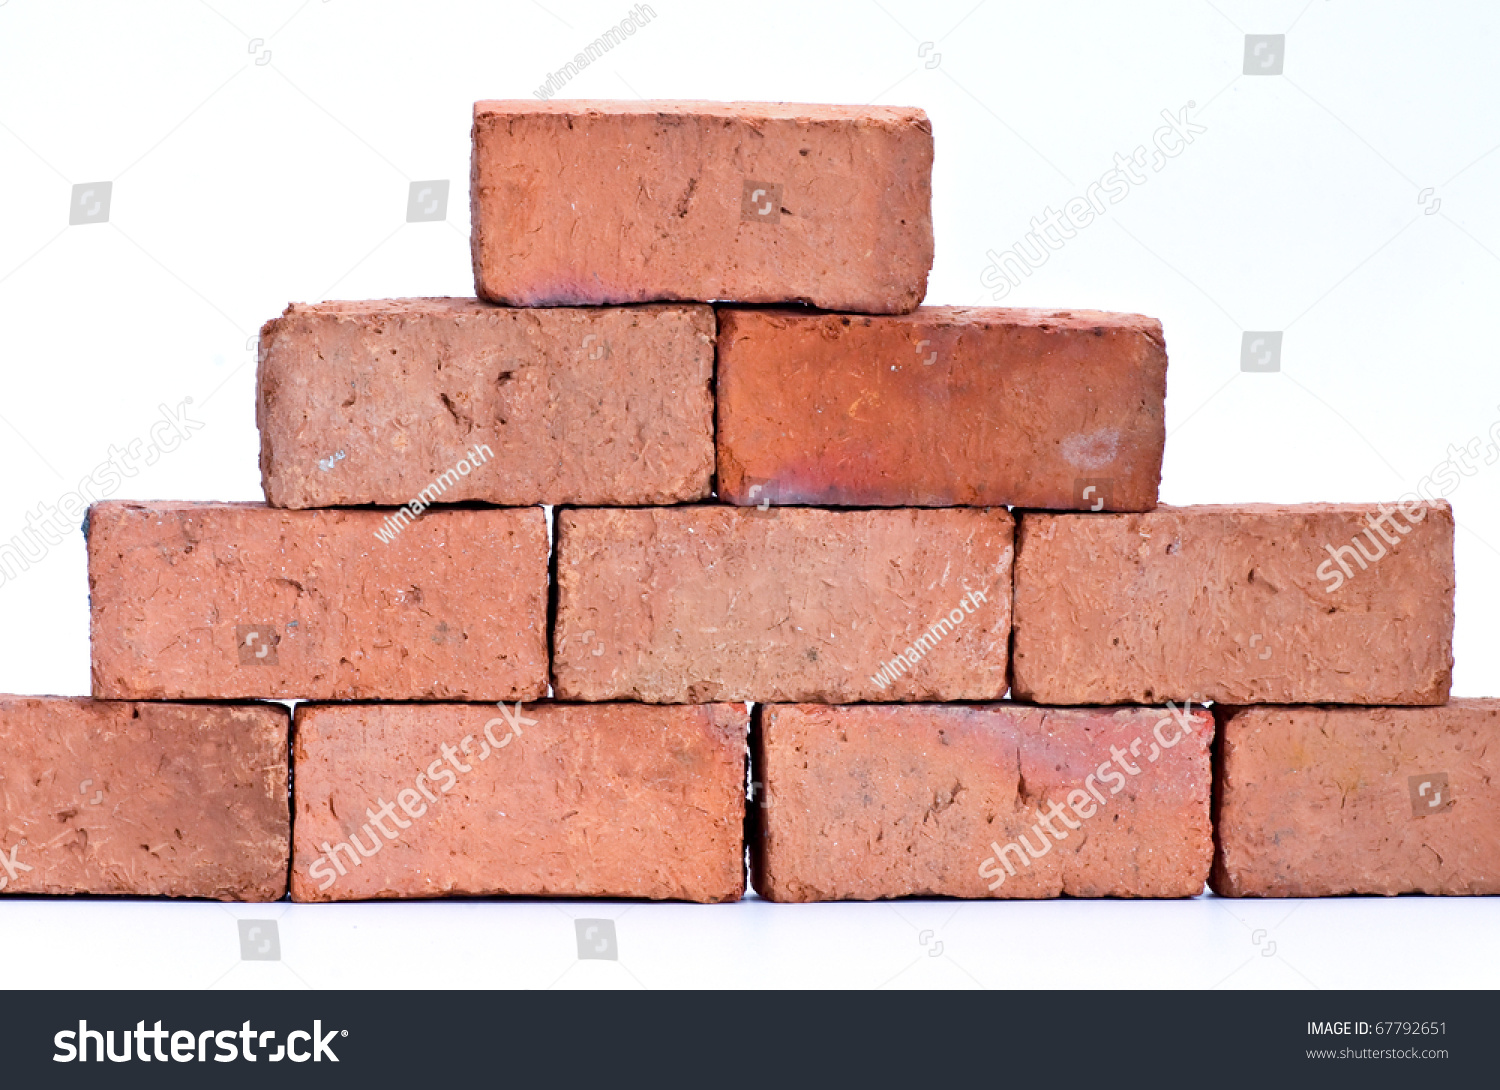 Red Clay Bricks : Red clay brick isolated on white stock photo